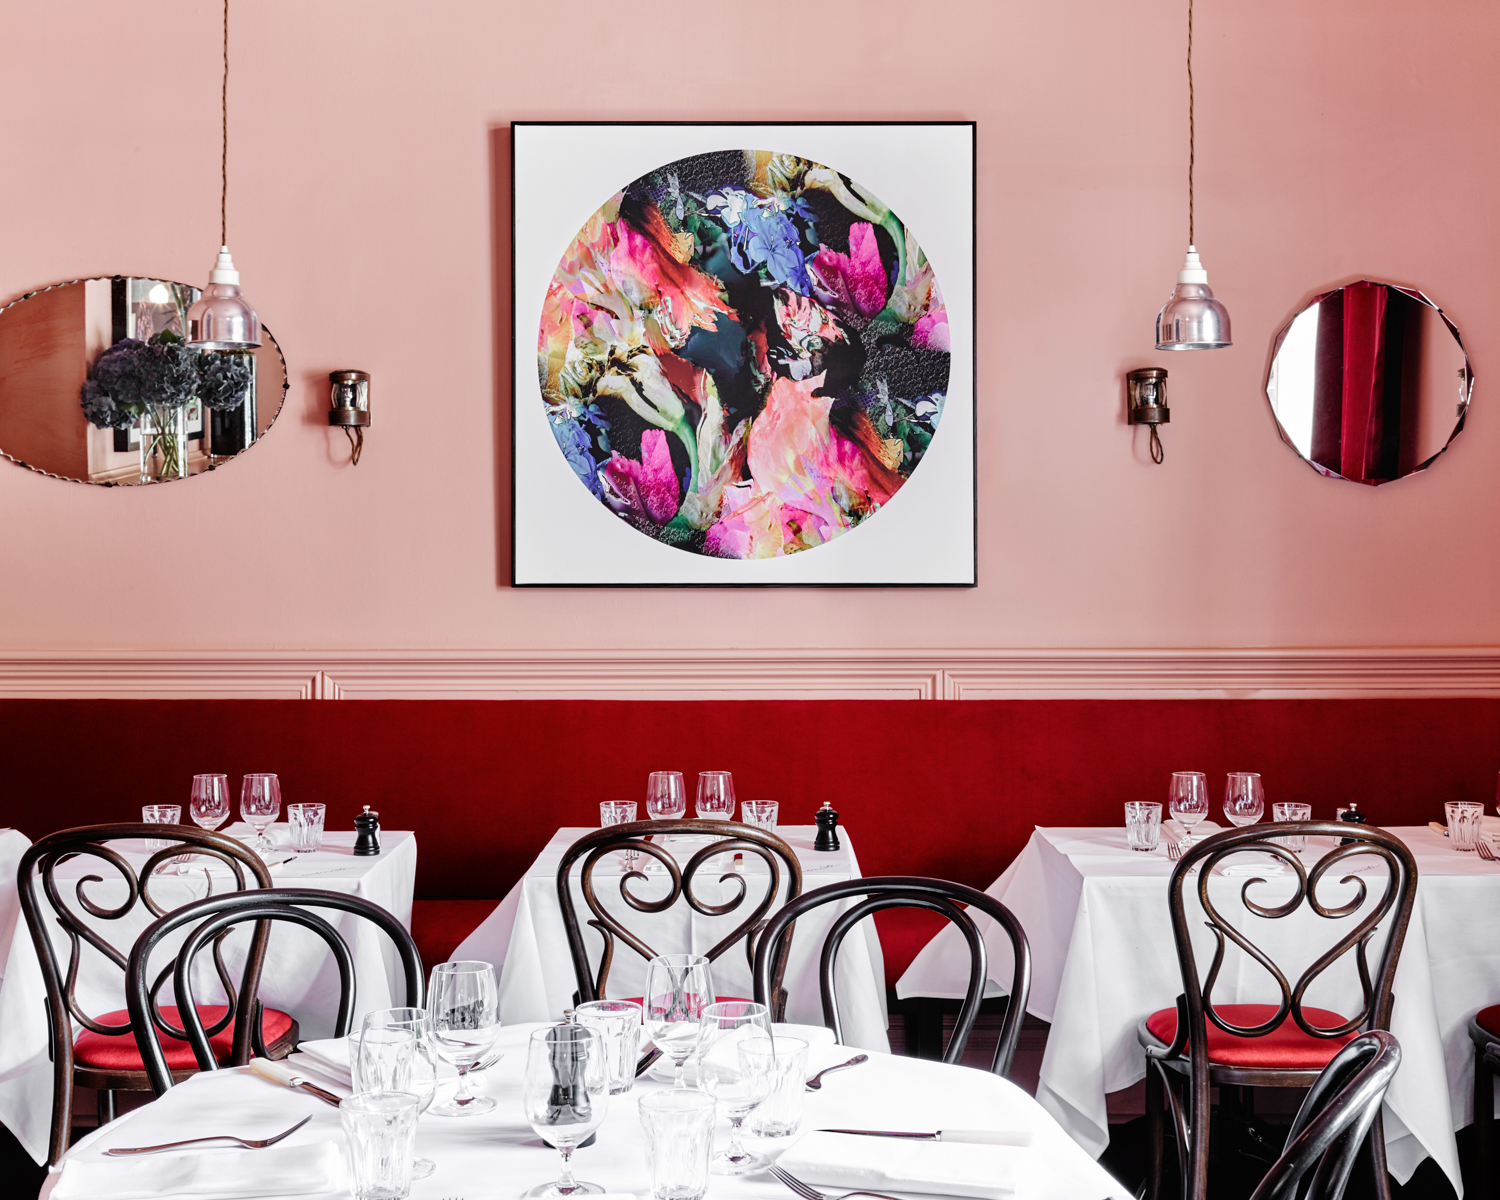 entrecote-in-south-yarra-melbourne-5.jpg